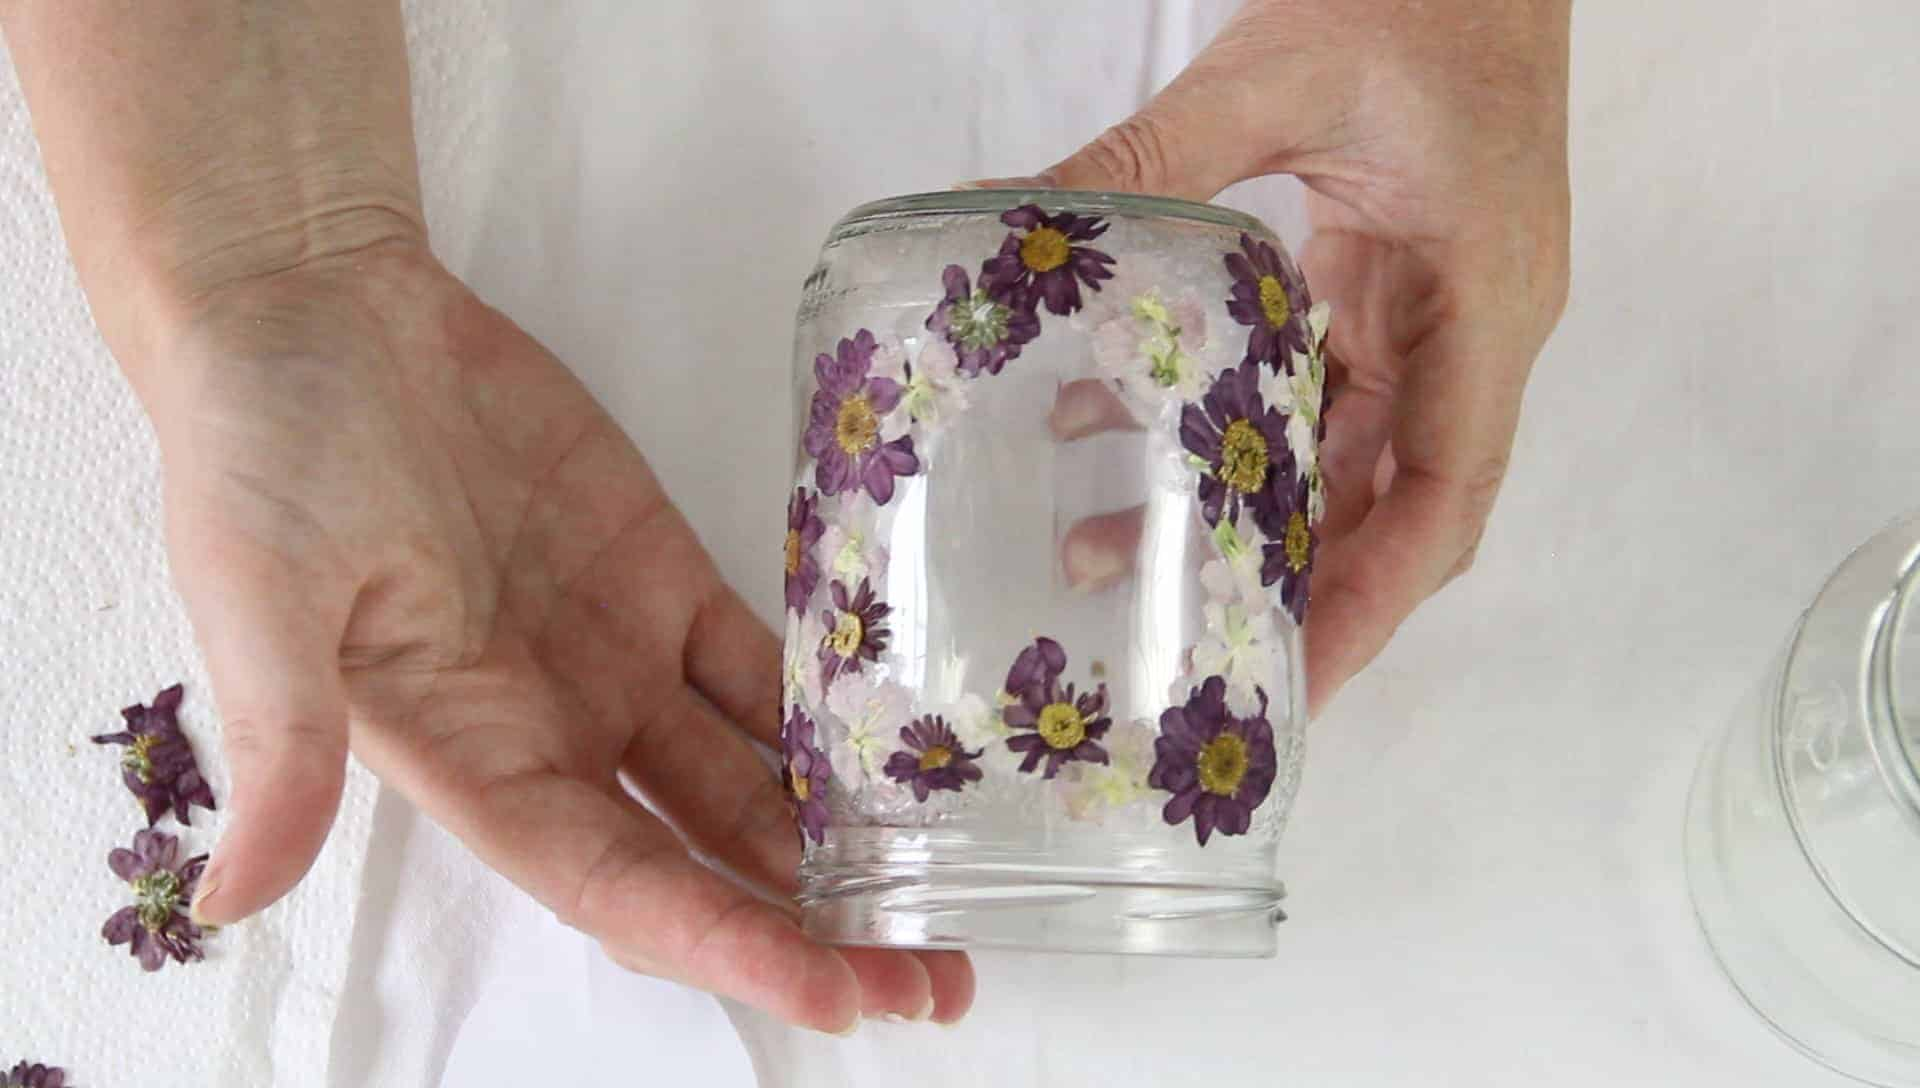 A person's hands showing a glass jar lantern with pressed flowers glued on around a heart shape.